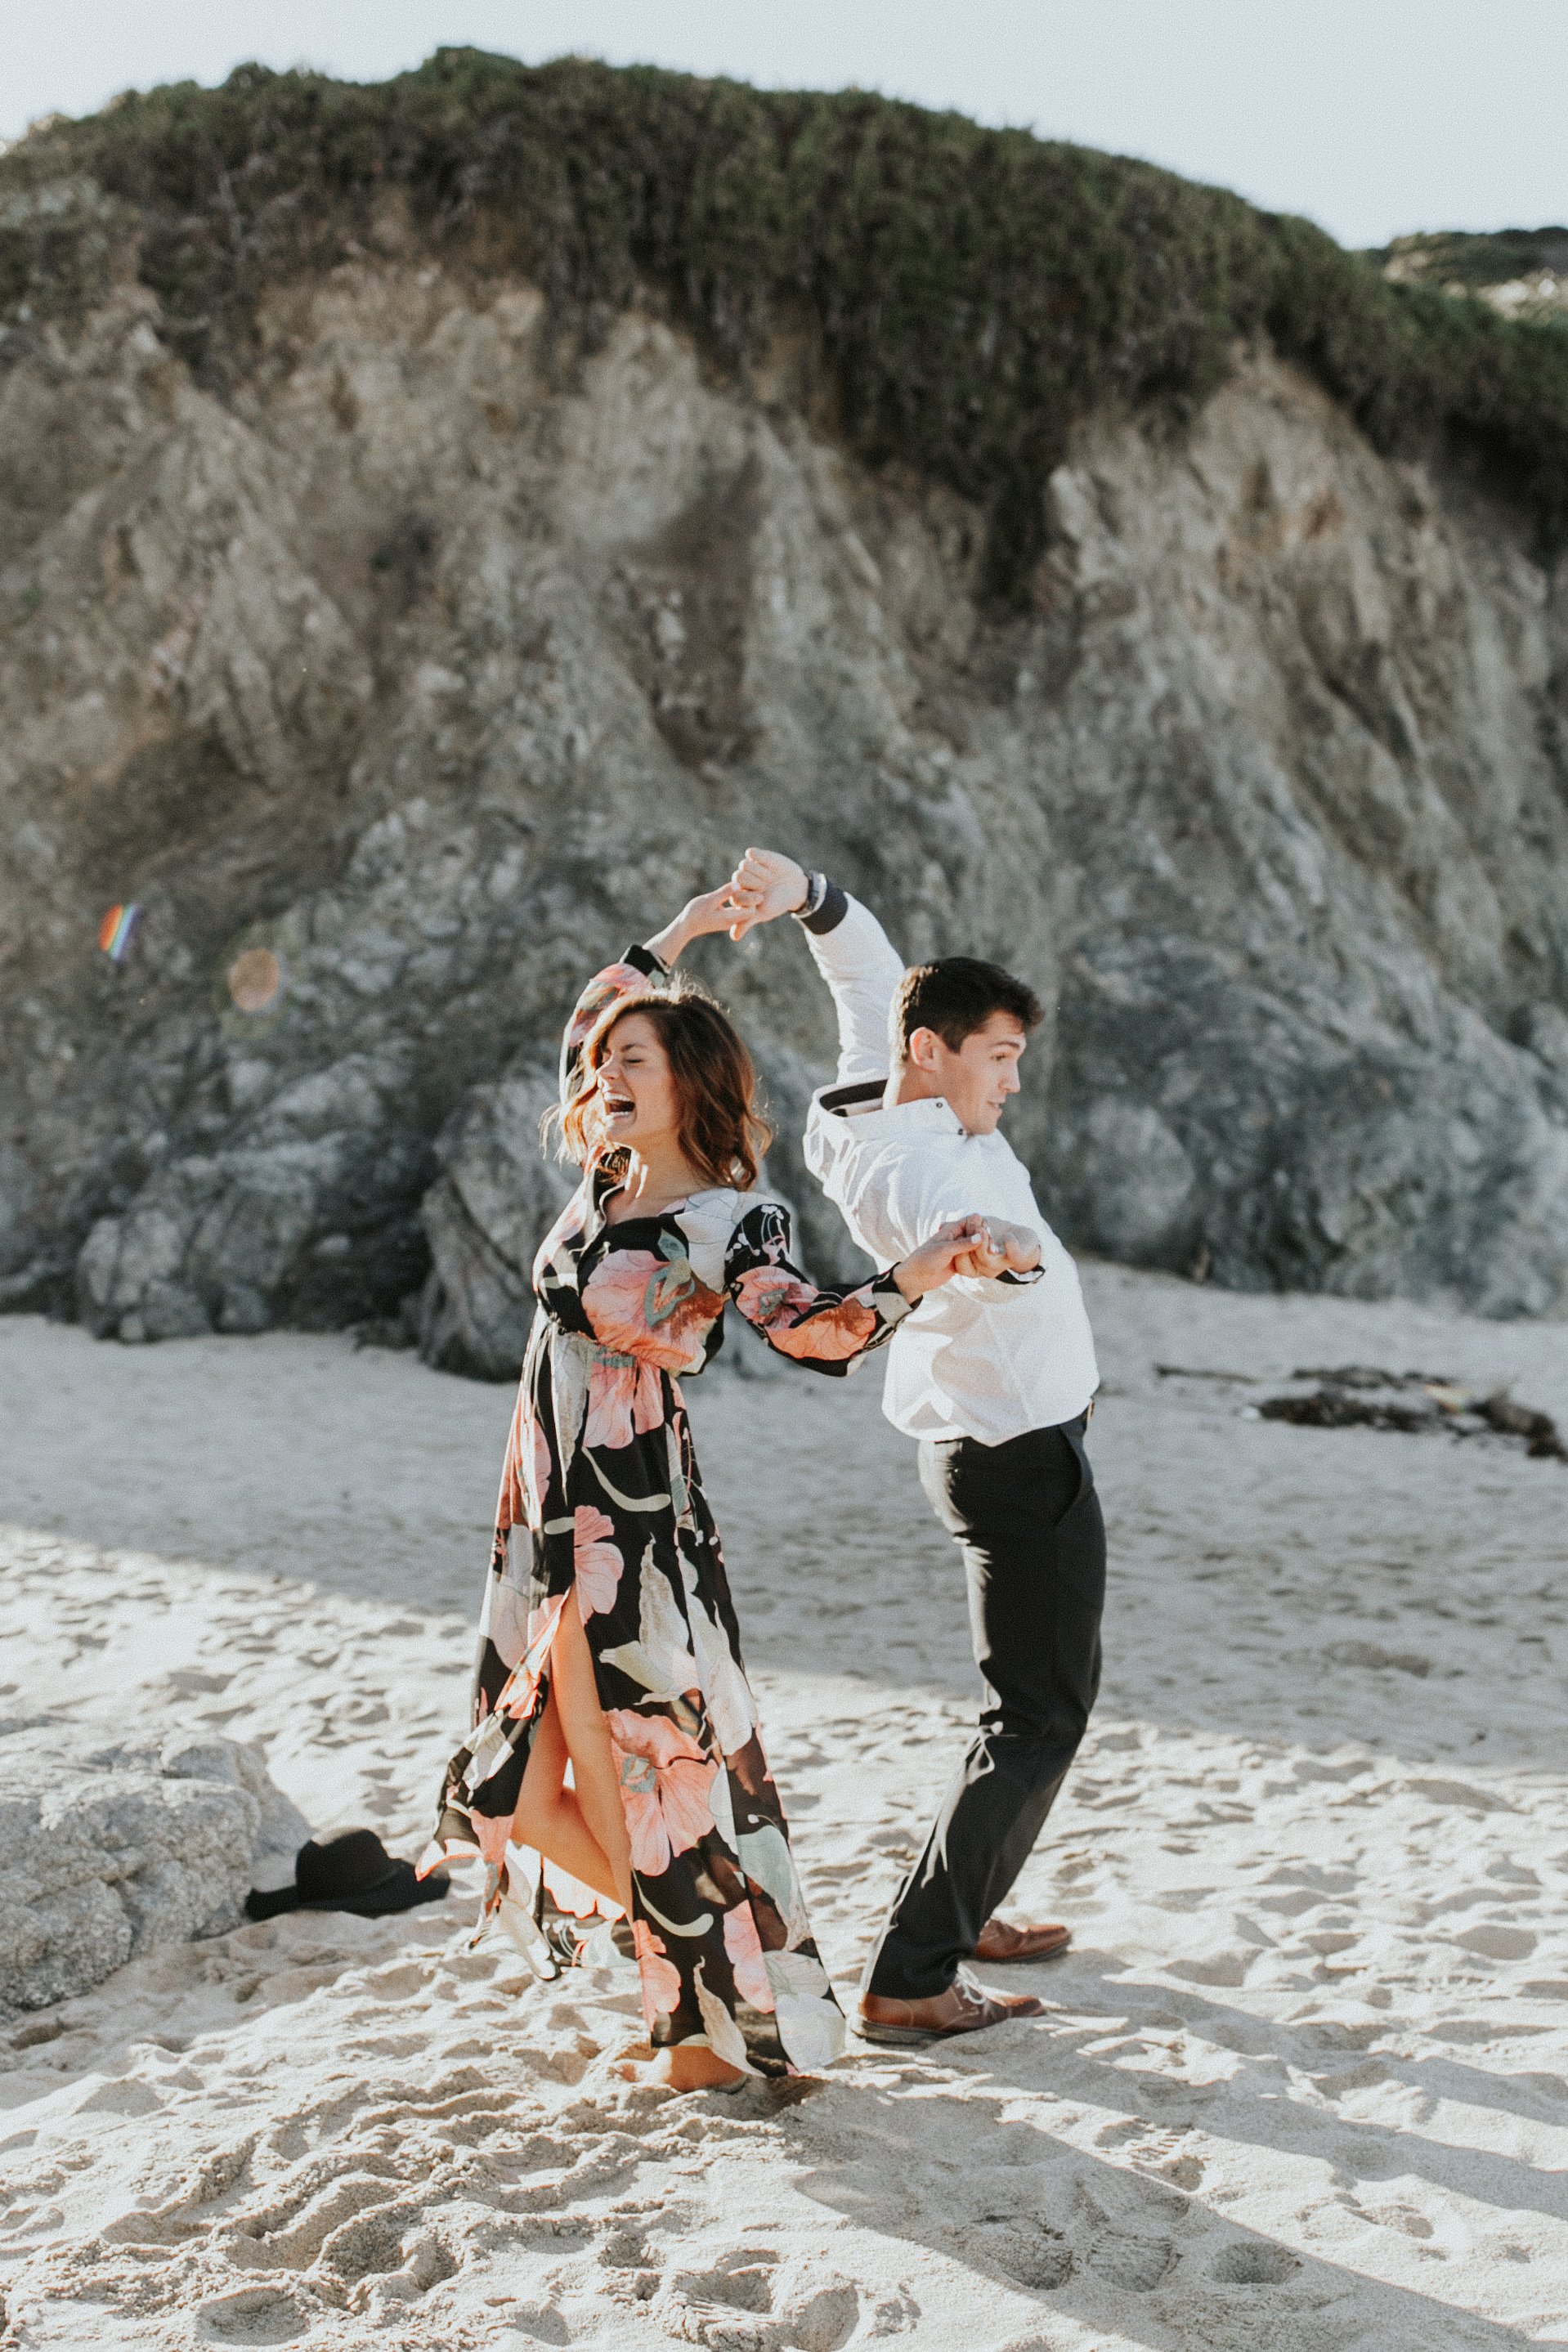 gracetphotography-destination-wedding-photographer-bigsur-adventure-elopement-22.jpg